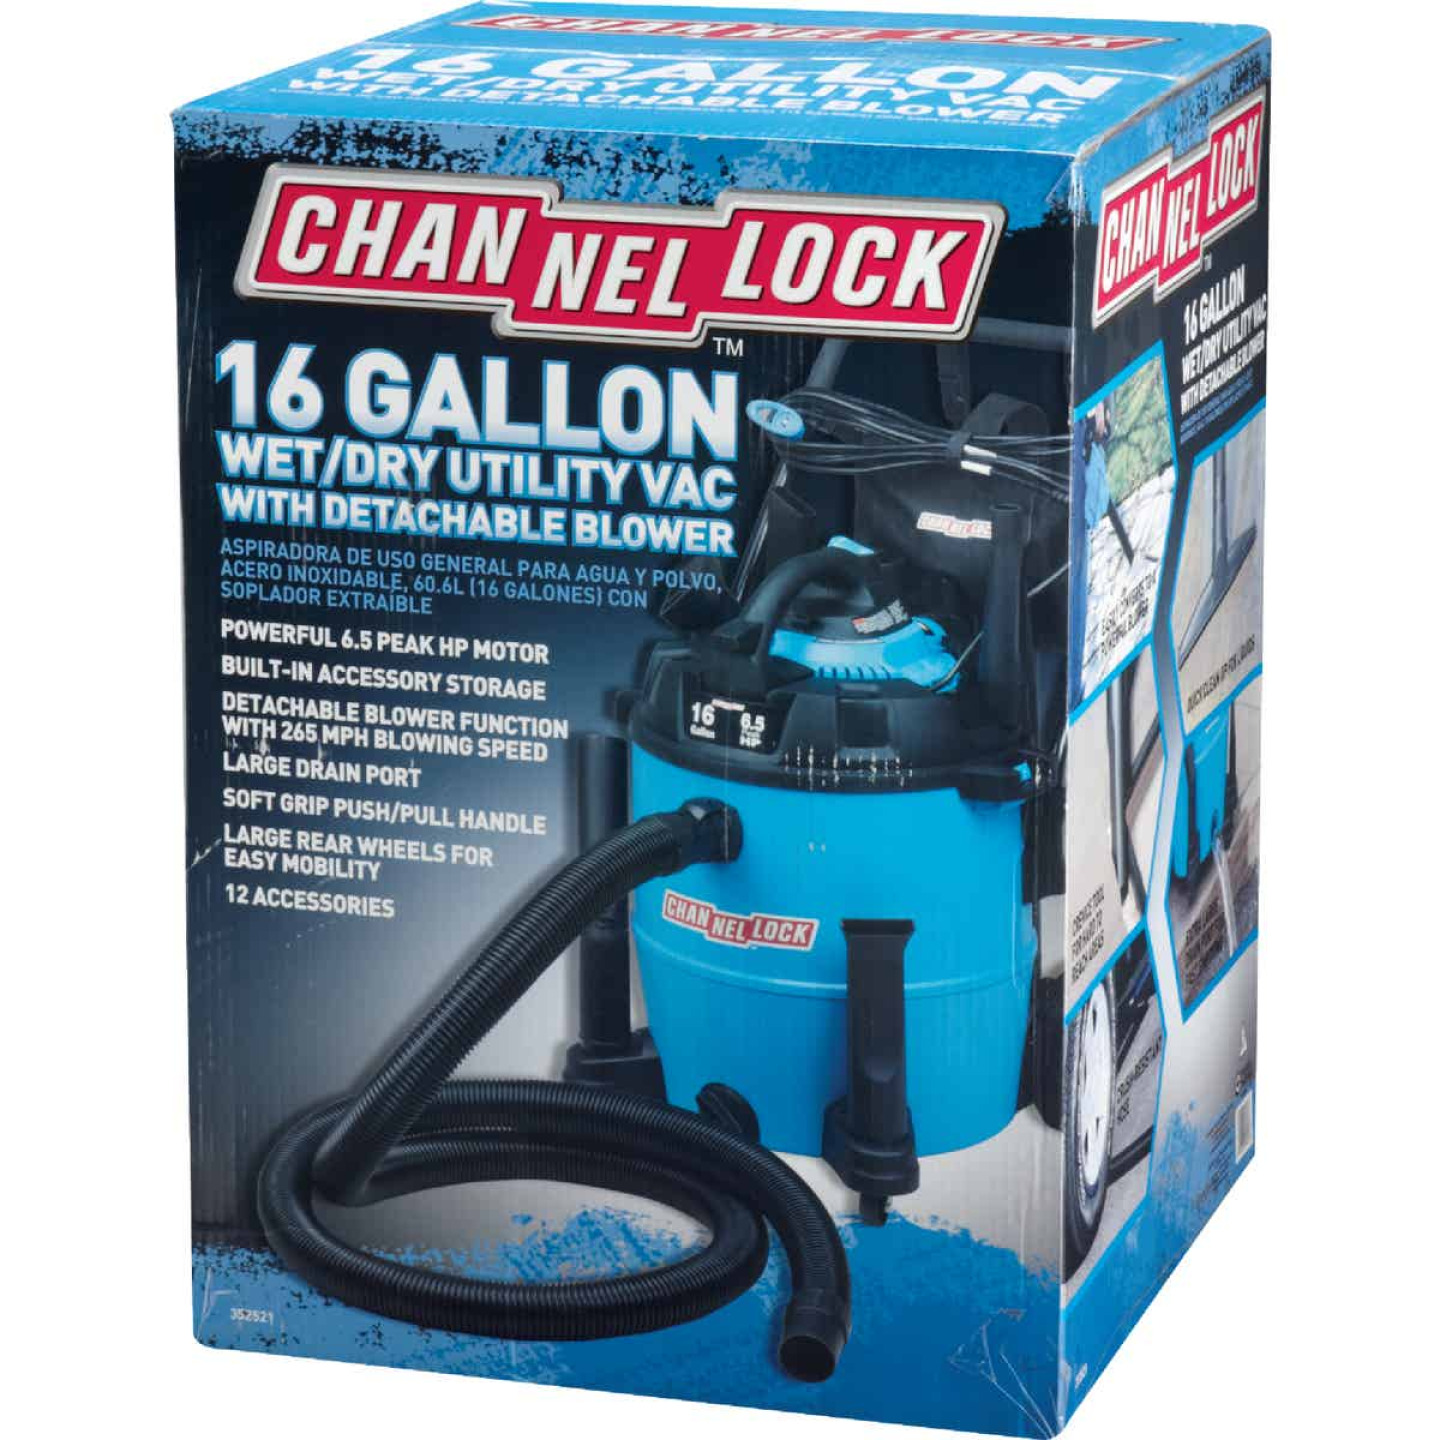 Channellock 16 Gal. 6.5-Peak HP Wet/Dry Vacuum with Blower Image 4